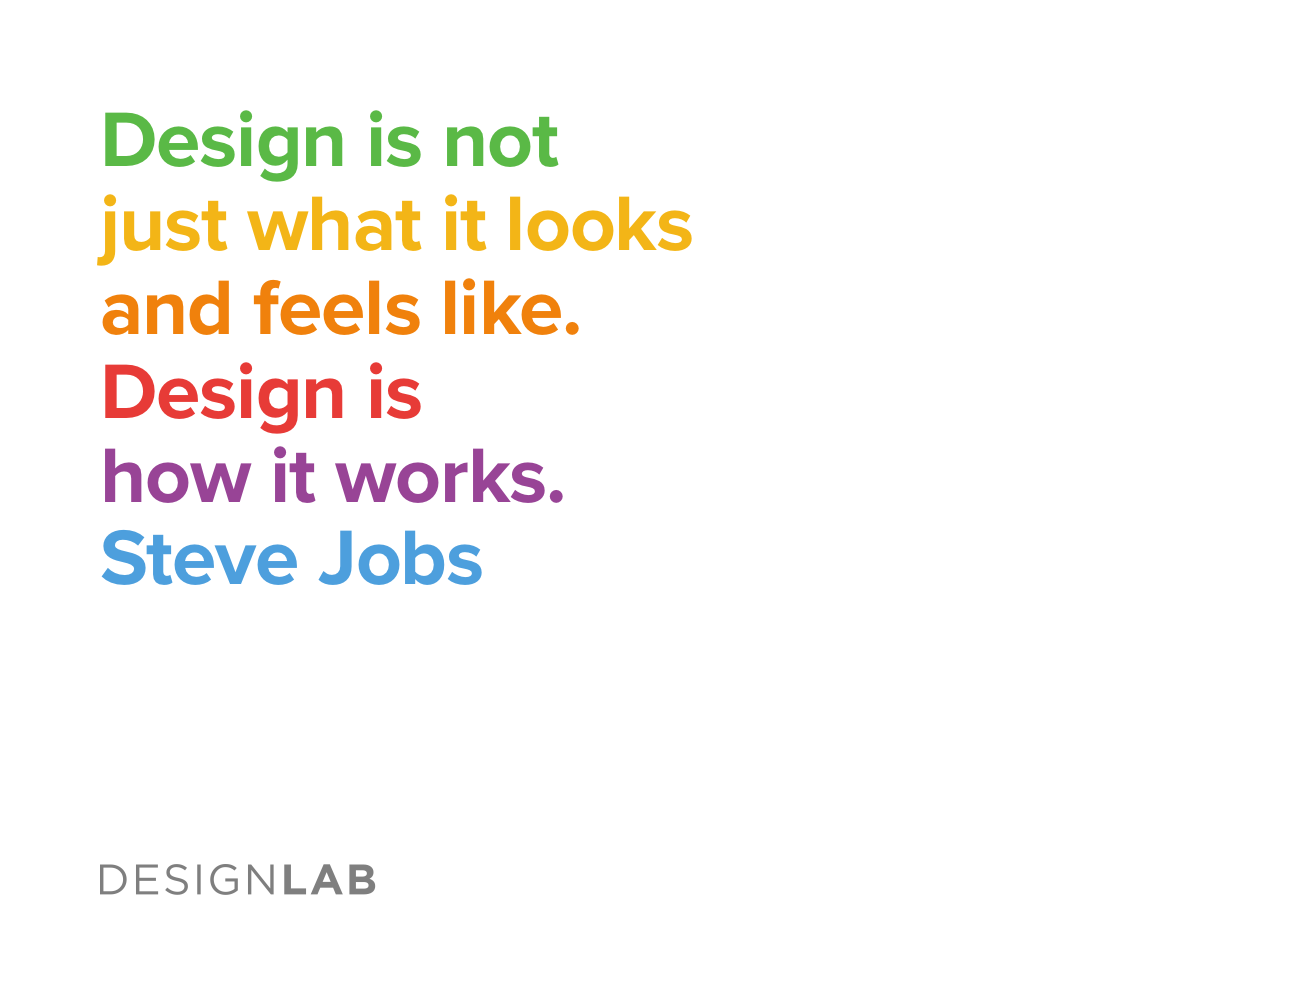 Design is not just what it looks like and feels like. Design is how it works. Steve Jobs